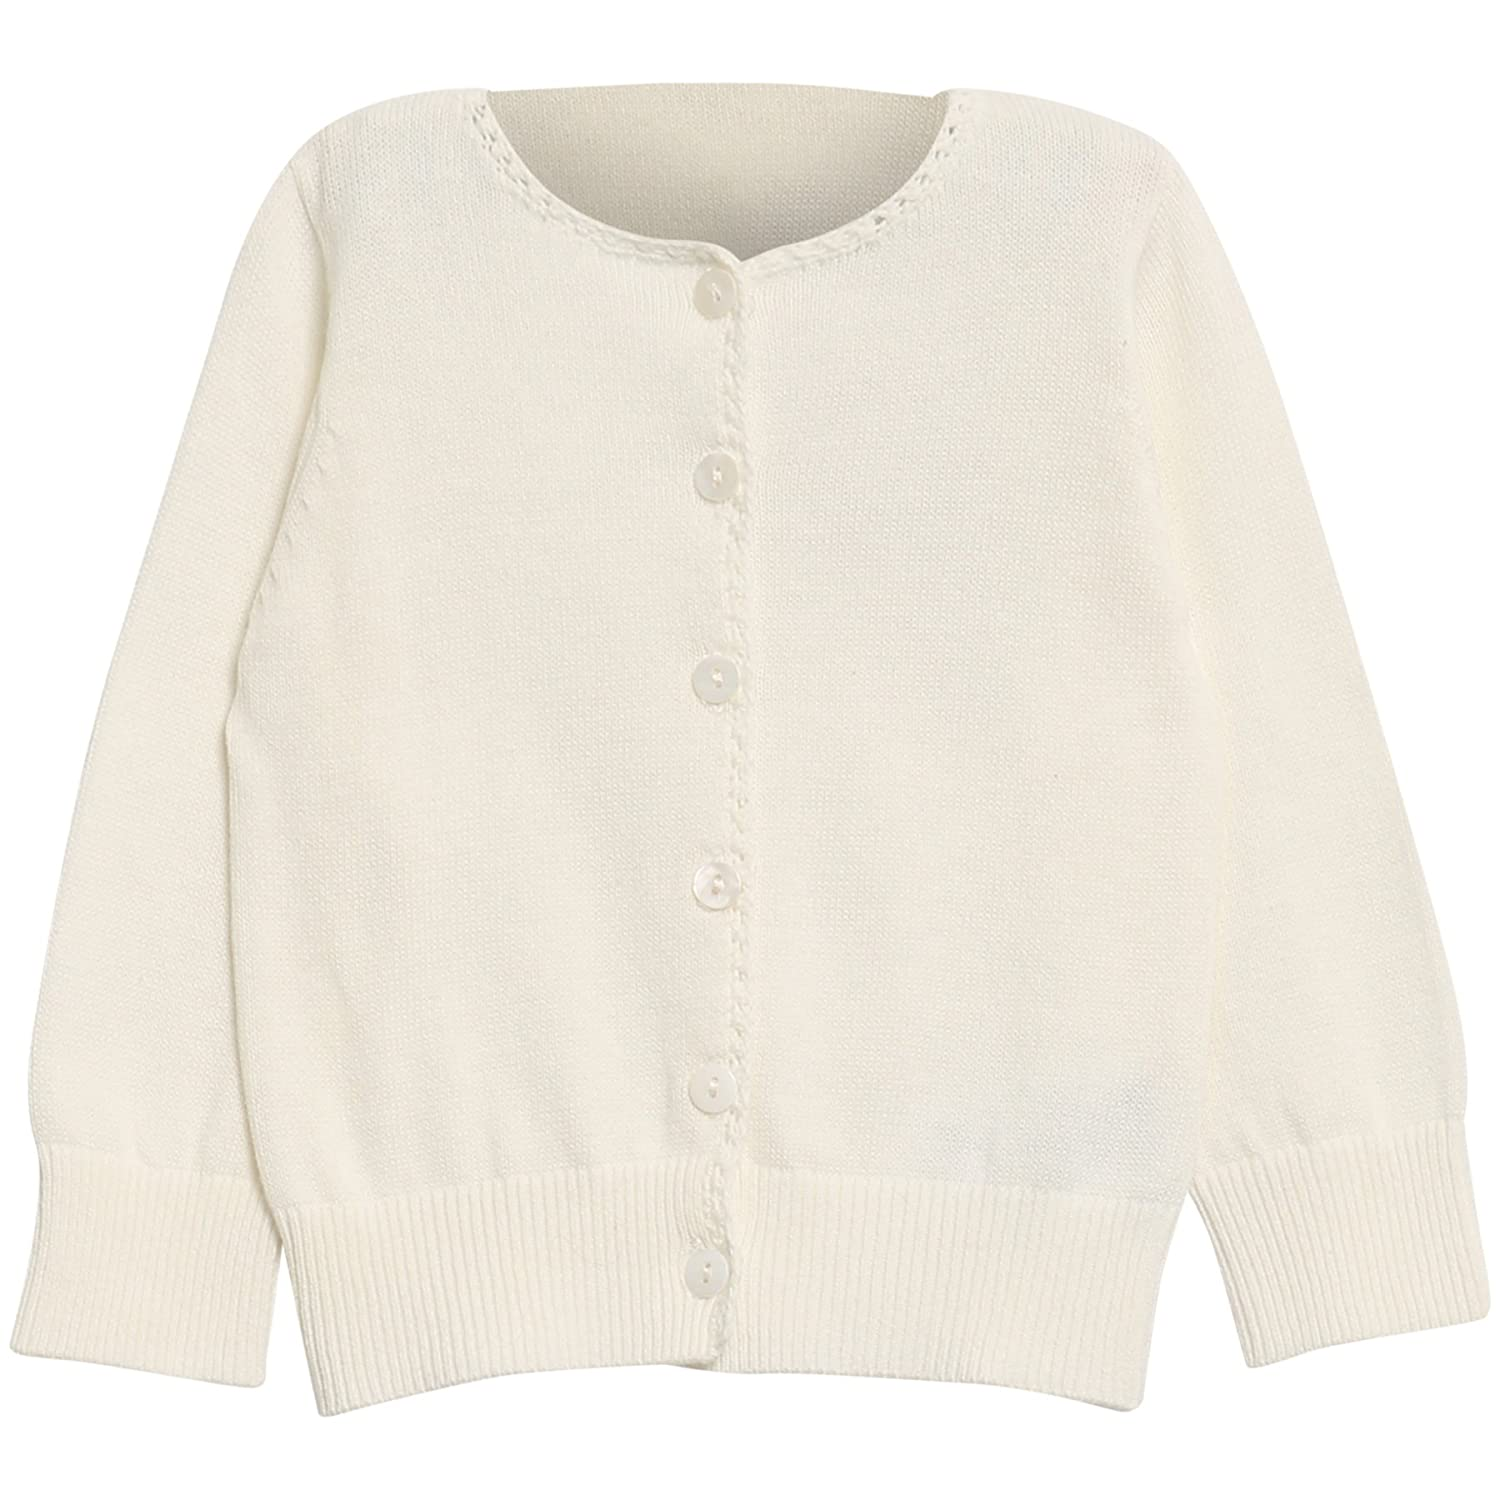 Wheat Baby-Mä dchen Strickjacke Classic OffSpring A/S